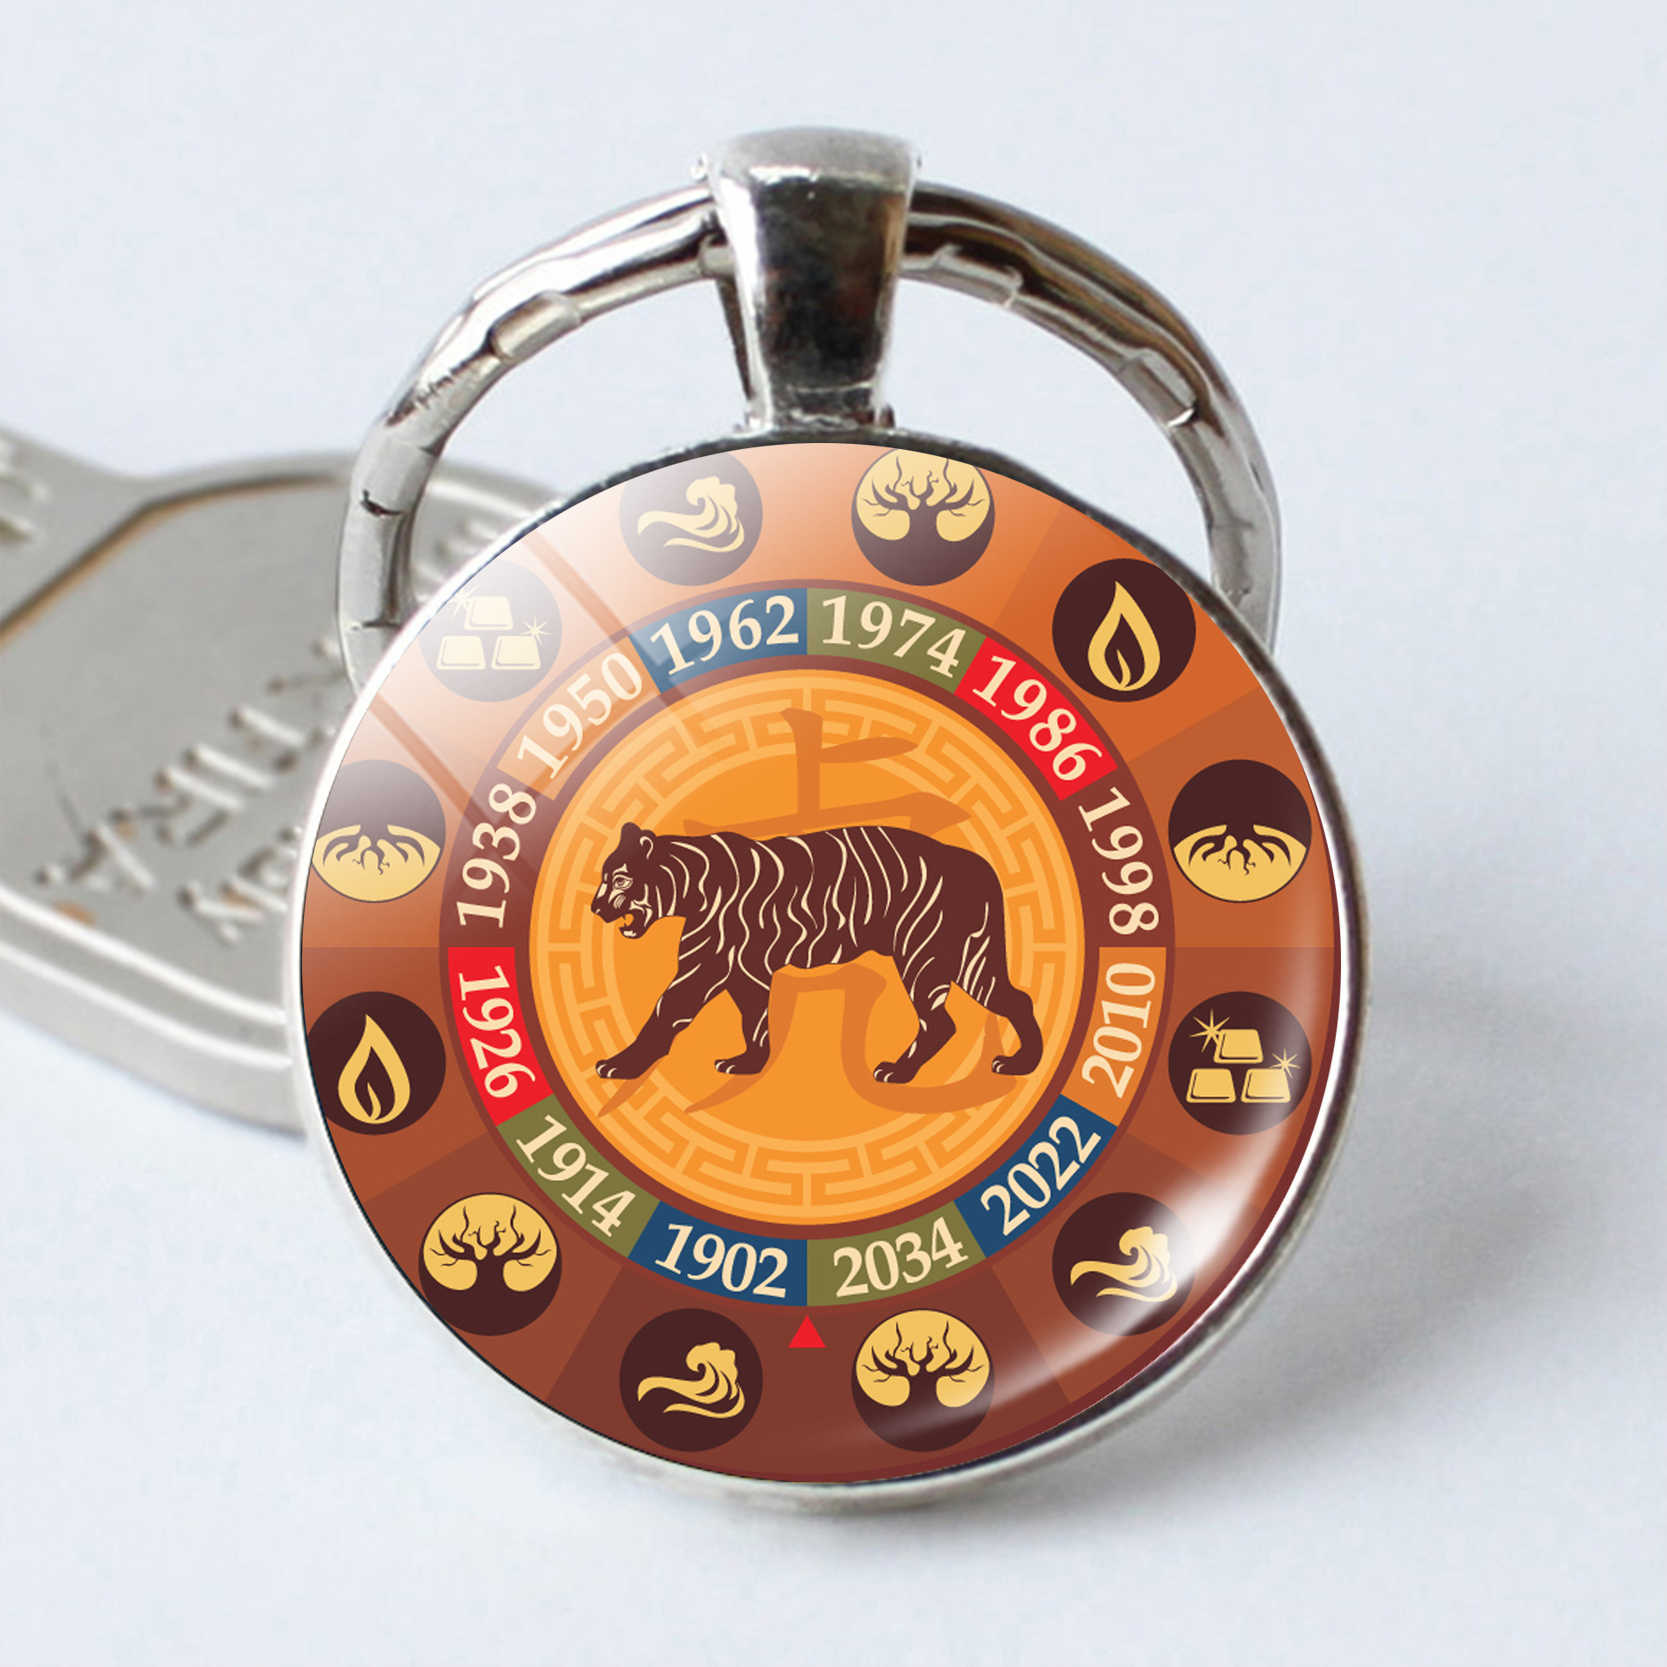 25mm Cabochon The Chinese Zodiac Signs Keyrings 12 Constellations Keychains  Traditional Fashion Key Rings Chains Jewelry Gift